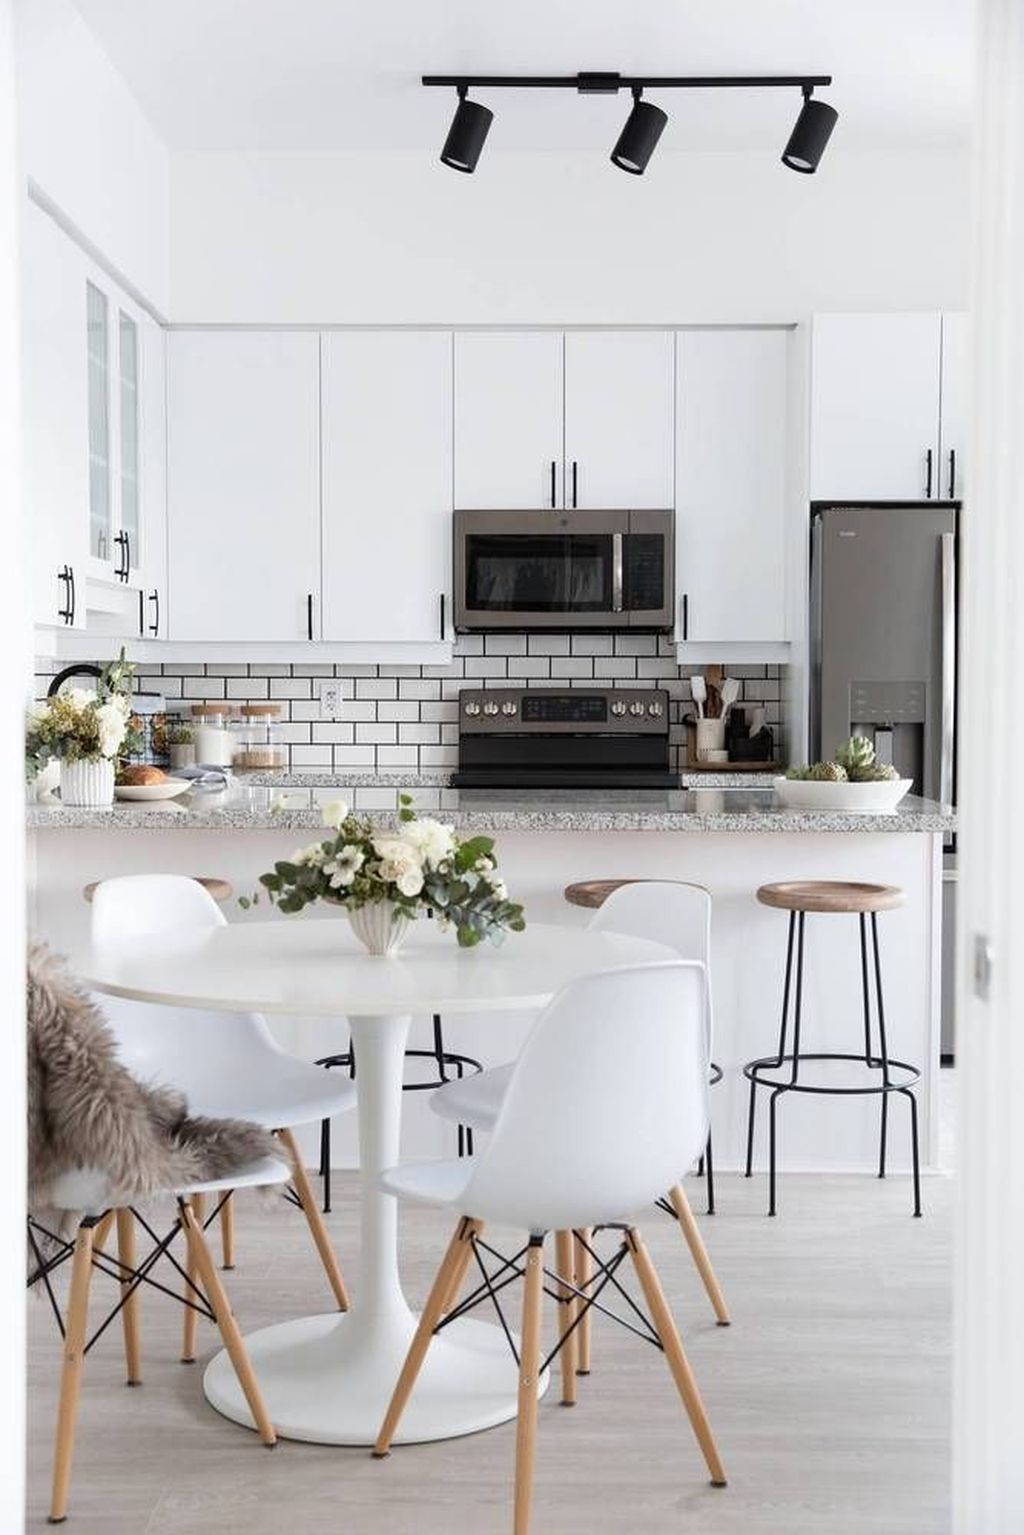 47 Amazing Kitchen And Dining Room Designs For Small Spaces